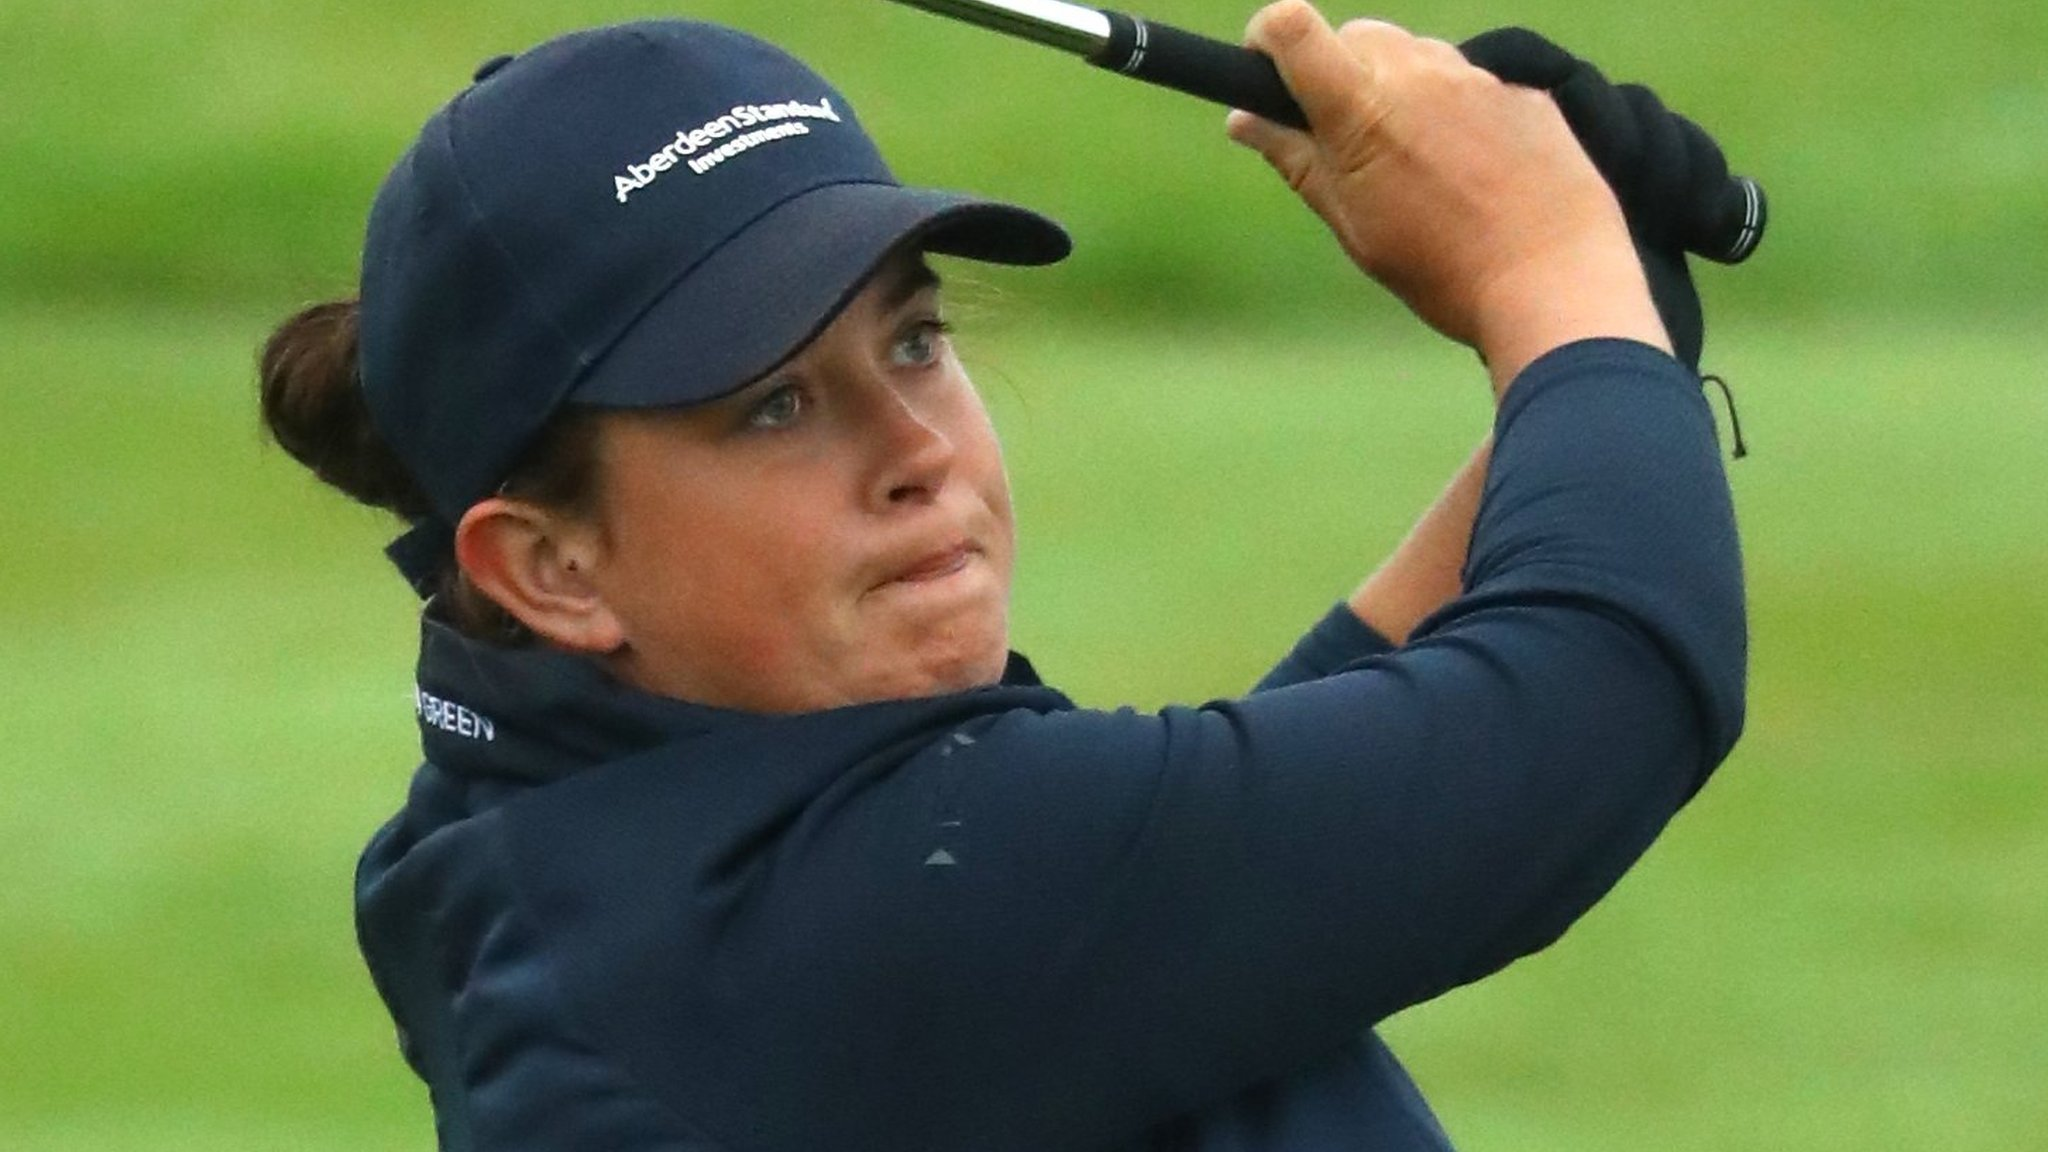 Michele Thomson eyes title at Indian Open after second-place finish